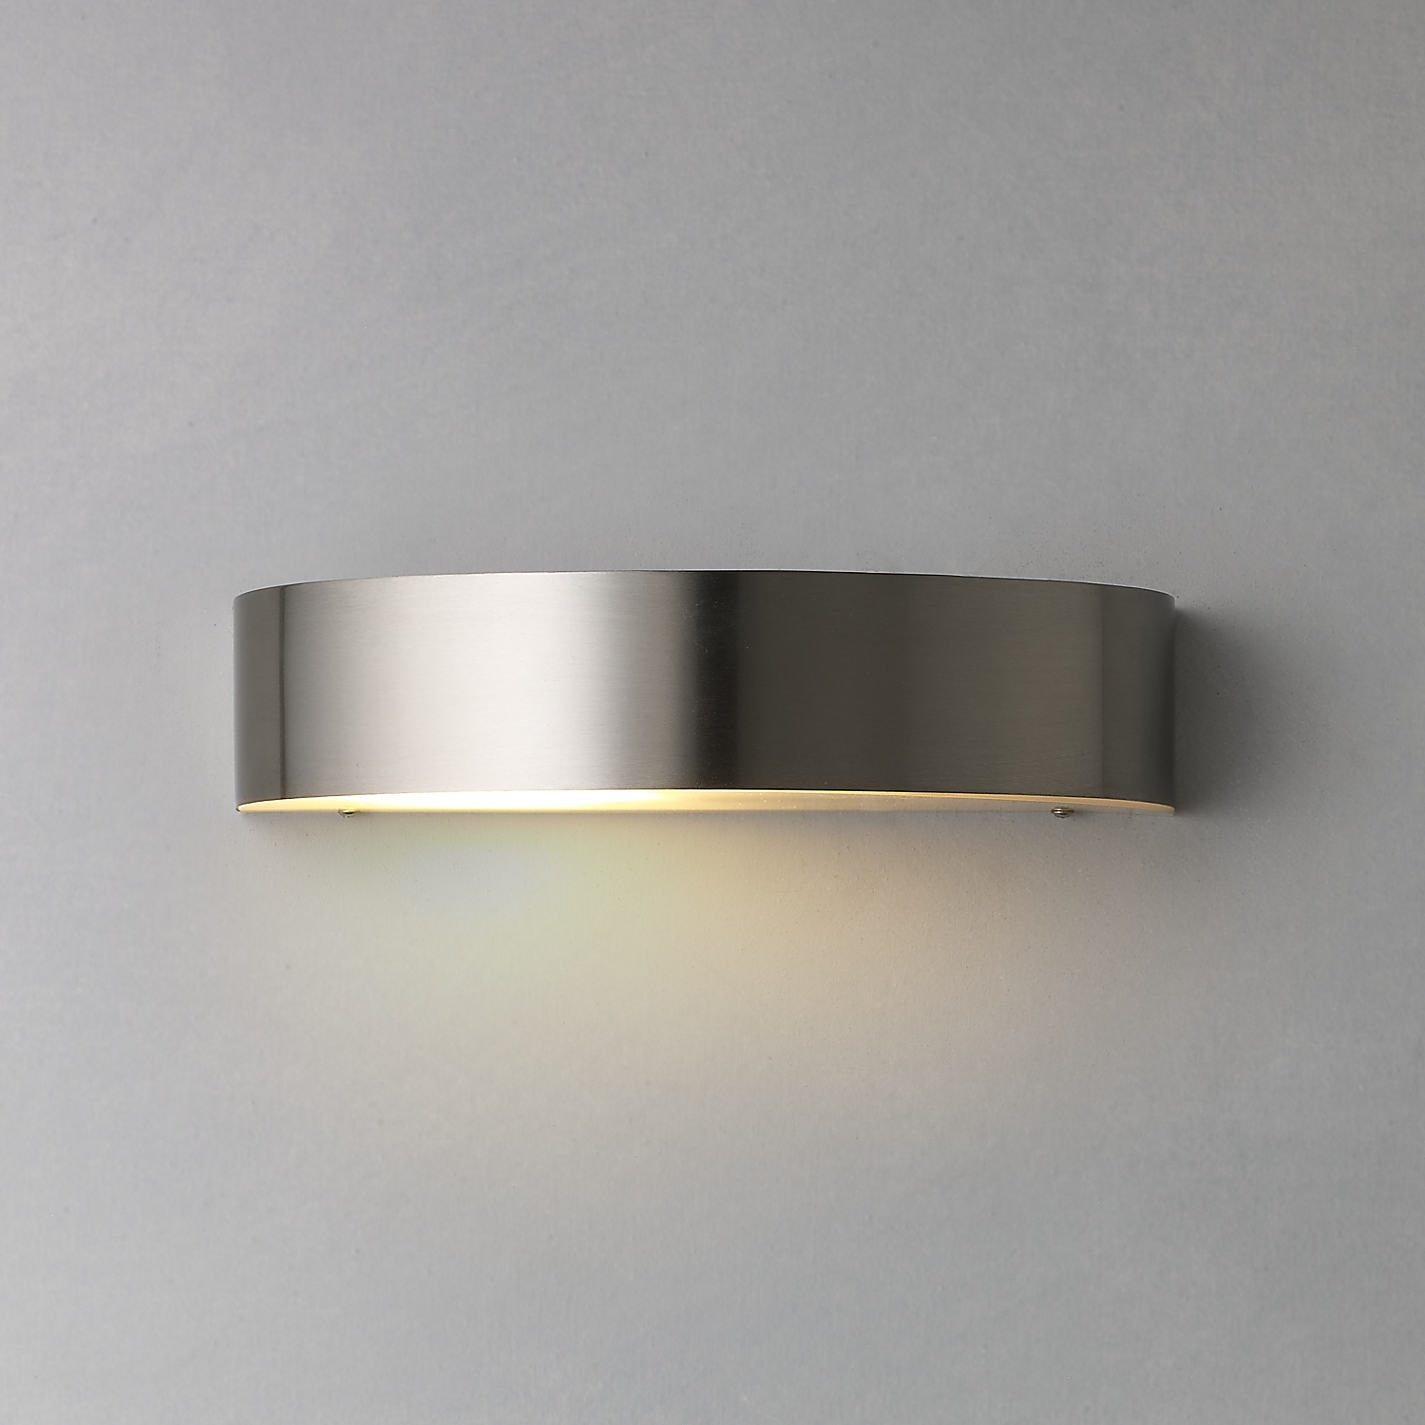 15 Ideas of Outdoor Wall Lighting at B&q